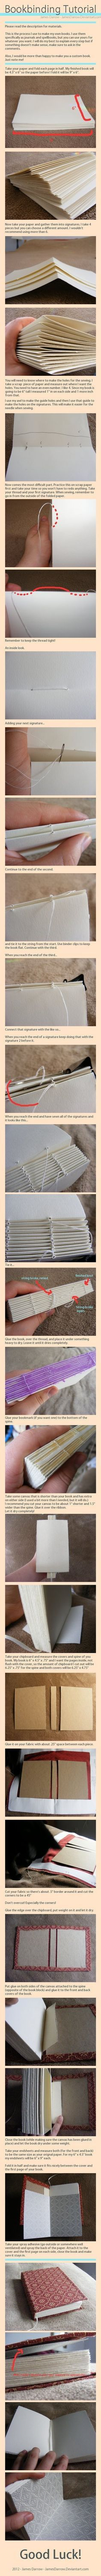 BOOK BINDING! I must try this. *might make a neat gift for the booklovers in my life.*